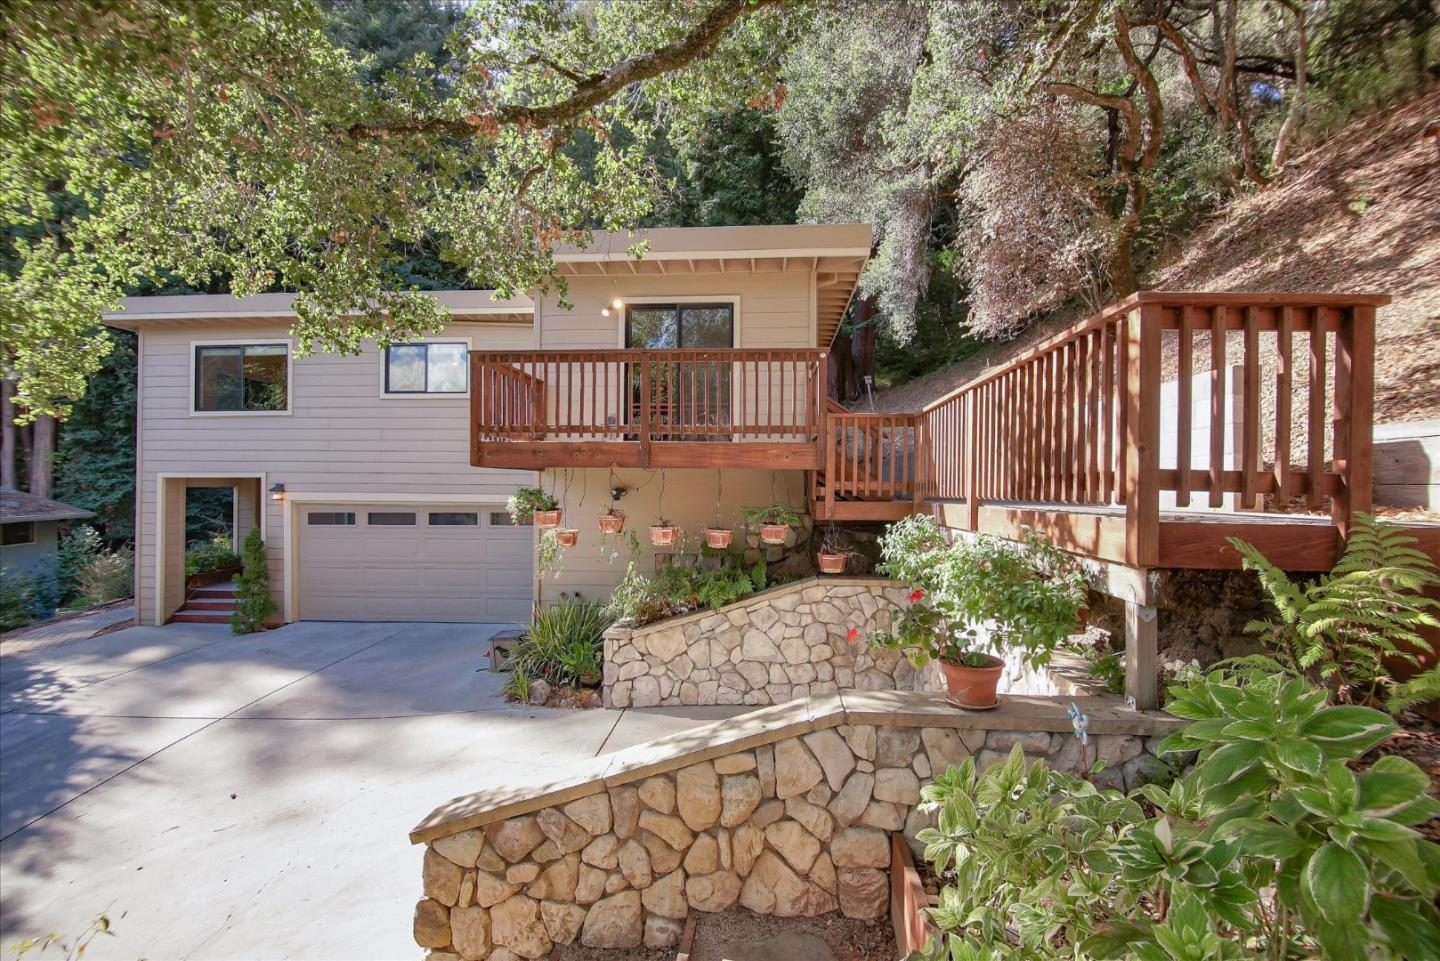 Move-in ready, this home is a beautiful split level family home with amazing updates surrounded by redwoods and oaks. Warm wood finishes combined with high ceilings and lots of windows for natural light. Located in the center of Scotts Valley, yet feels like you are in the country. This house is perfect for entertaining with an open floor plan consisting of two living rooms, a large kitchen with custom cabinets granite counters and high end appliances. A bonus room that has a 1/2 bath, can be used as an office, gym, or guest room. Lots of possibilities with this beautiful home! Take a step outside enjoy the amazing yard.